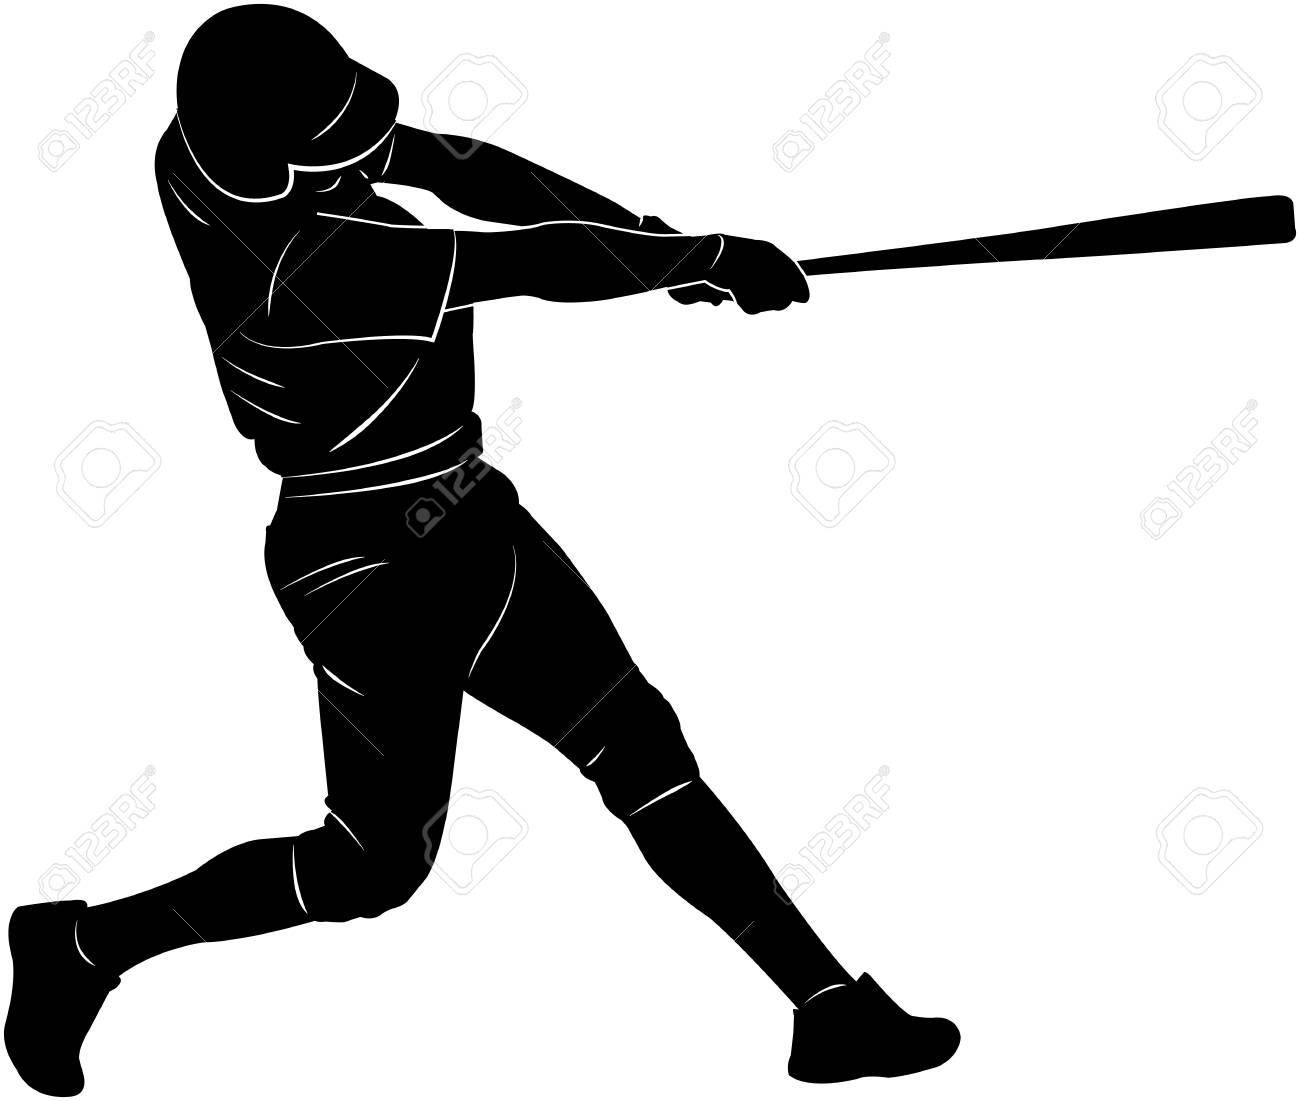 baseball player silhouette vector royalty free cliparts vectors rh 123rf com baseball player victor martinez basketball player victor jackson